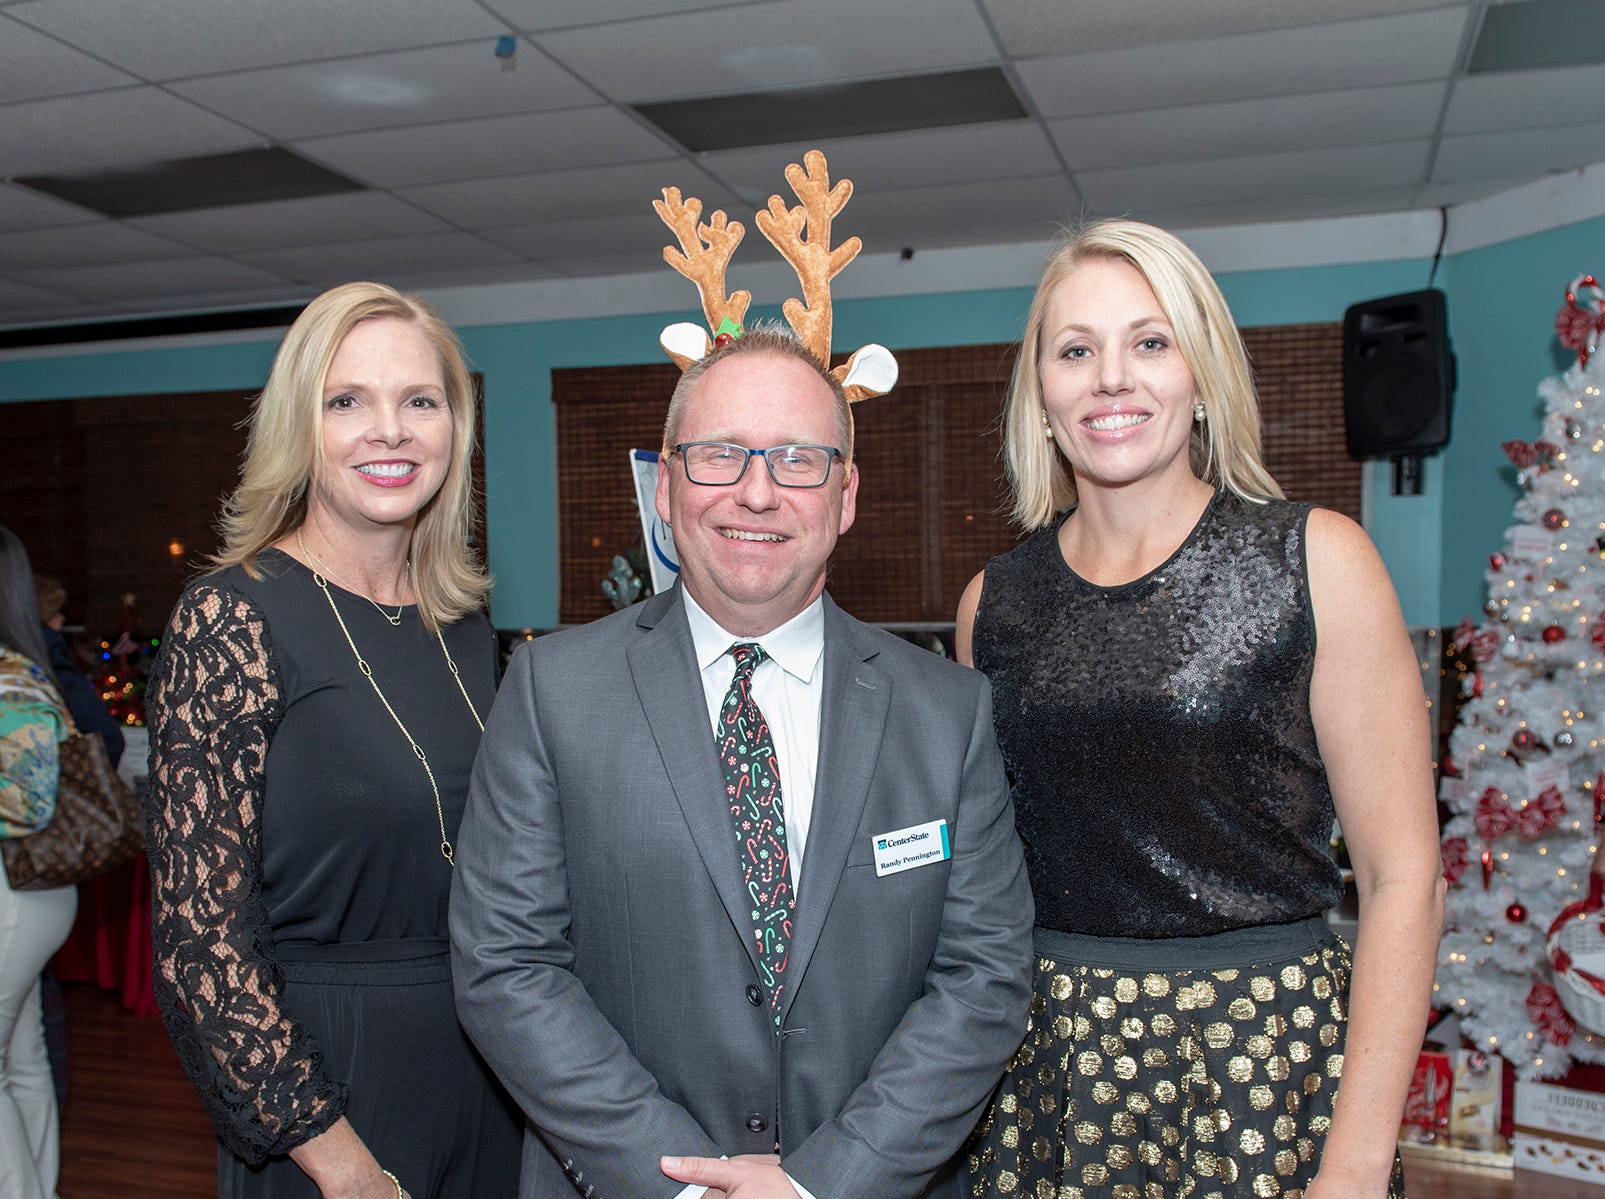 Christine DelVecchio, left, Randy Pennington and Kelly Johnson at the Tykes & Teens Festival of Trees & Lights.